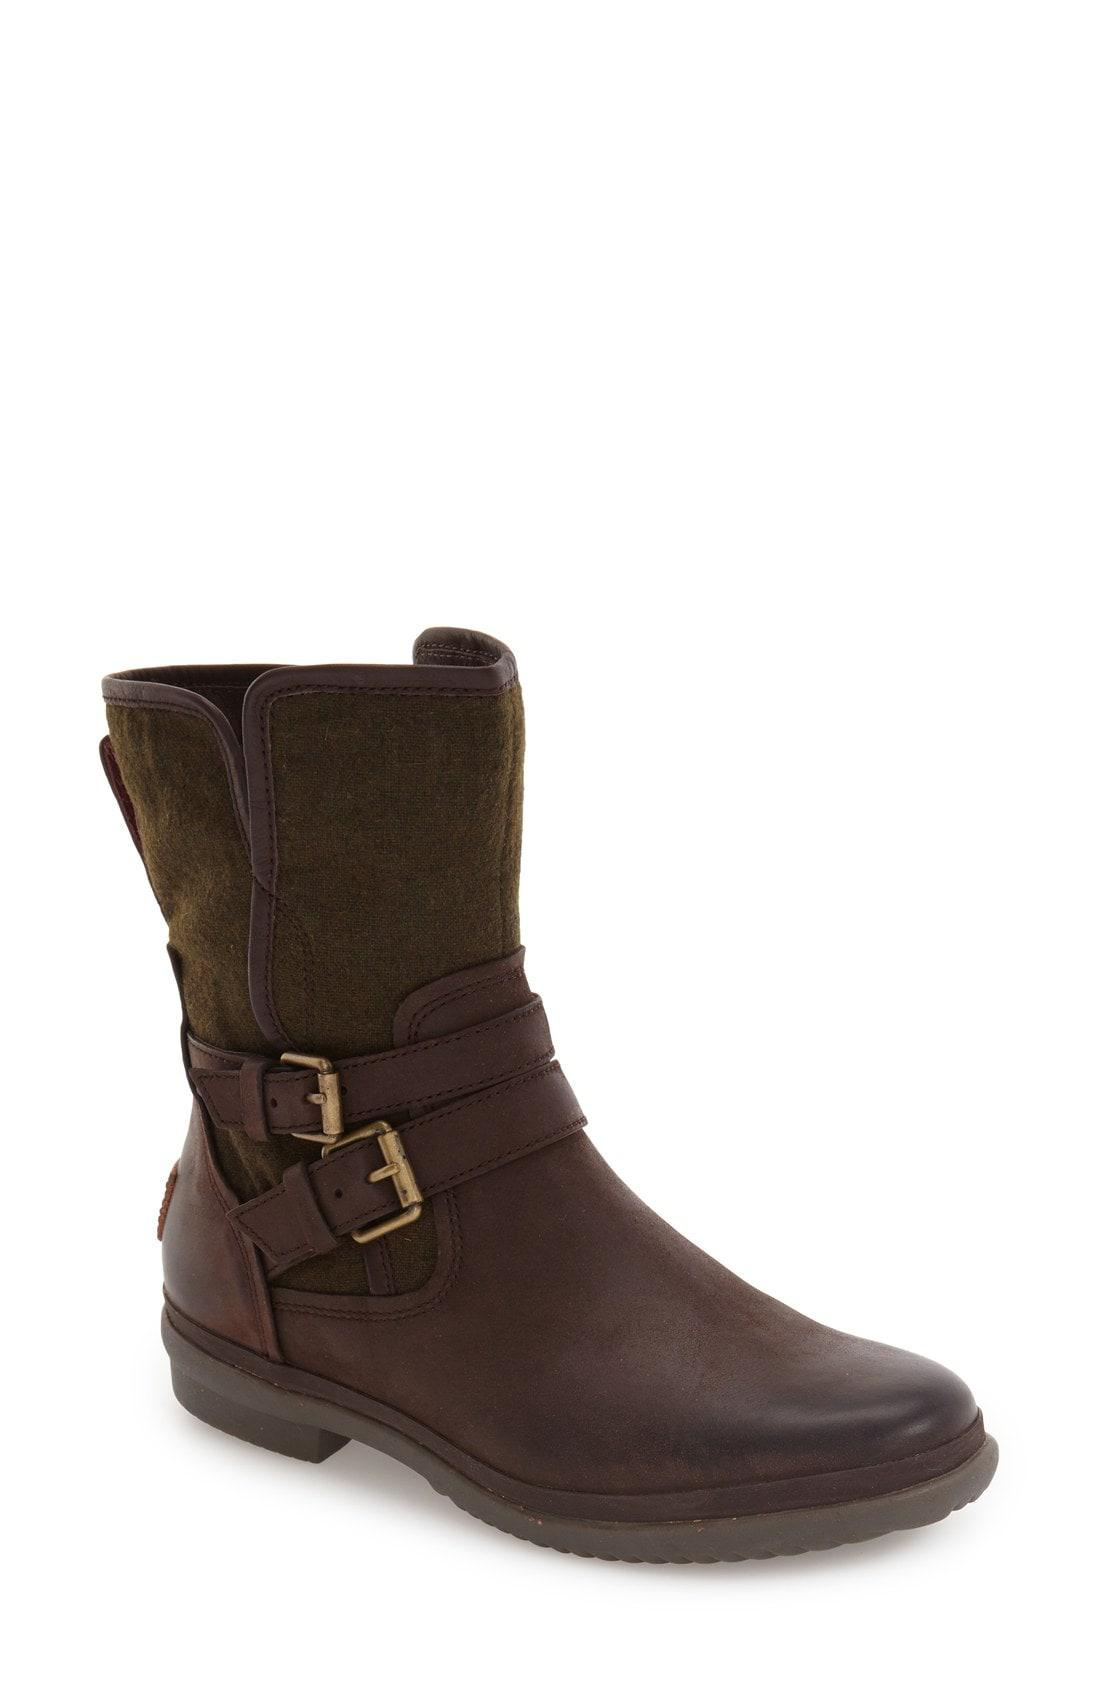 3aa529c0a43 UGG Ugg Simmens Waterproof Leather Boot in Brown - Lyst